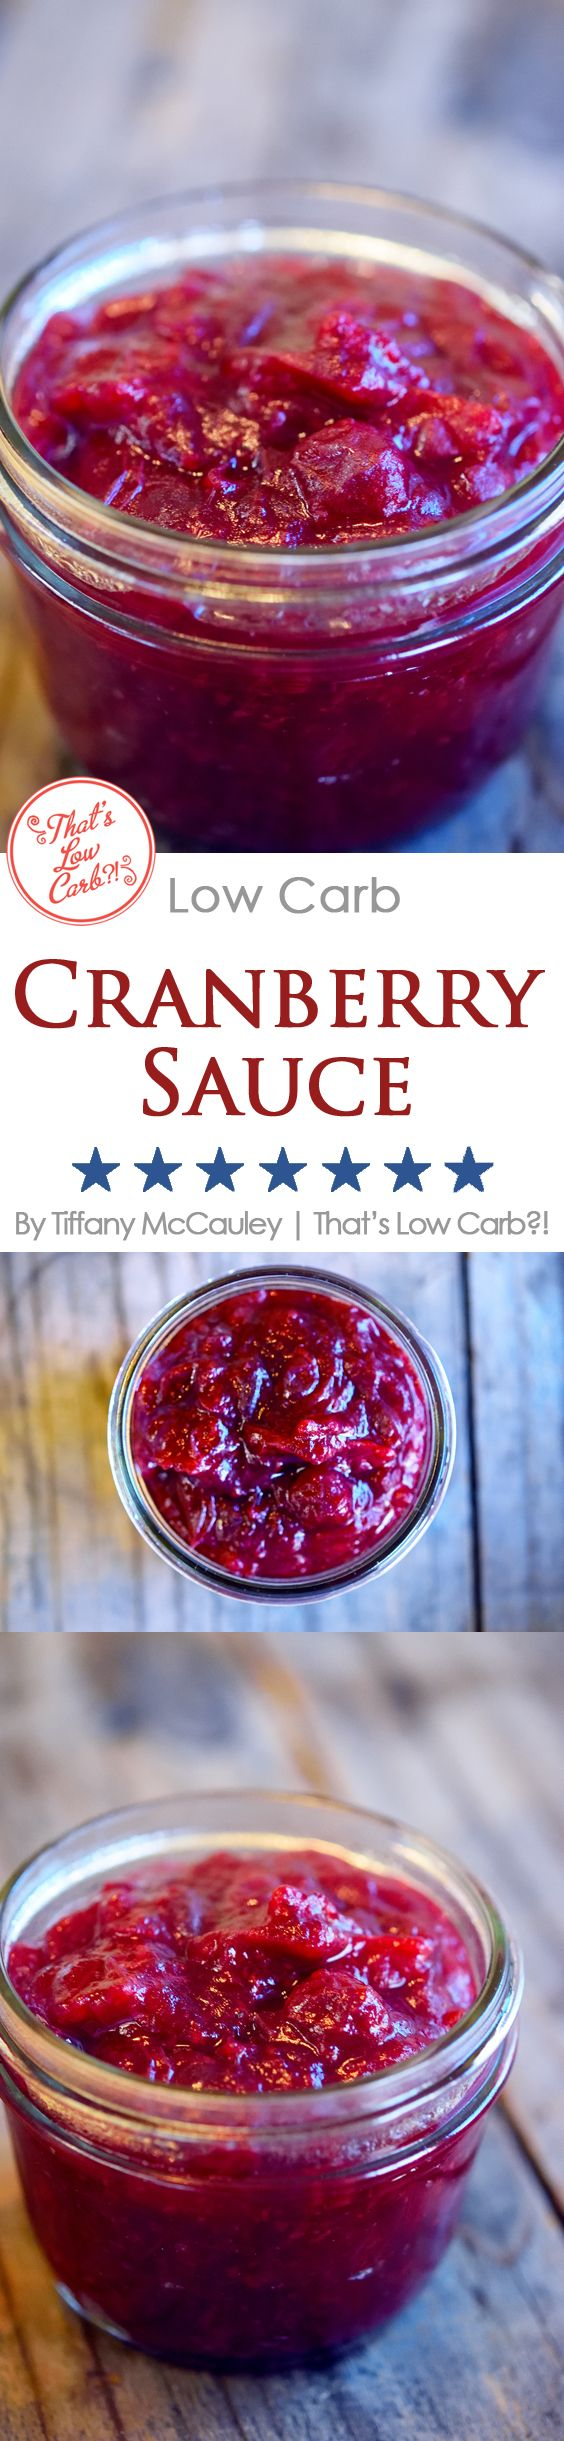 Low Carb Recipes | Low Carb Cranberry Sauce | Low Carb Holiday Recipes | Low Carb Cooking ~ http://www.thatslowcarb.com